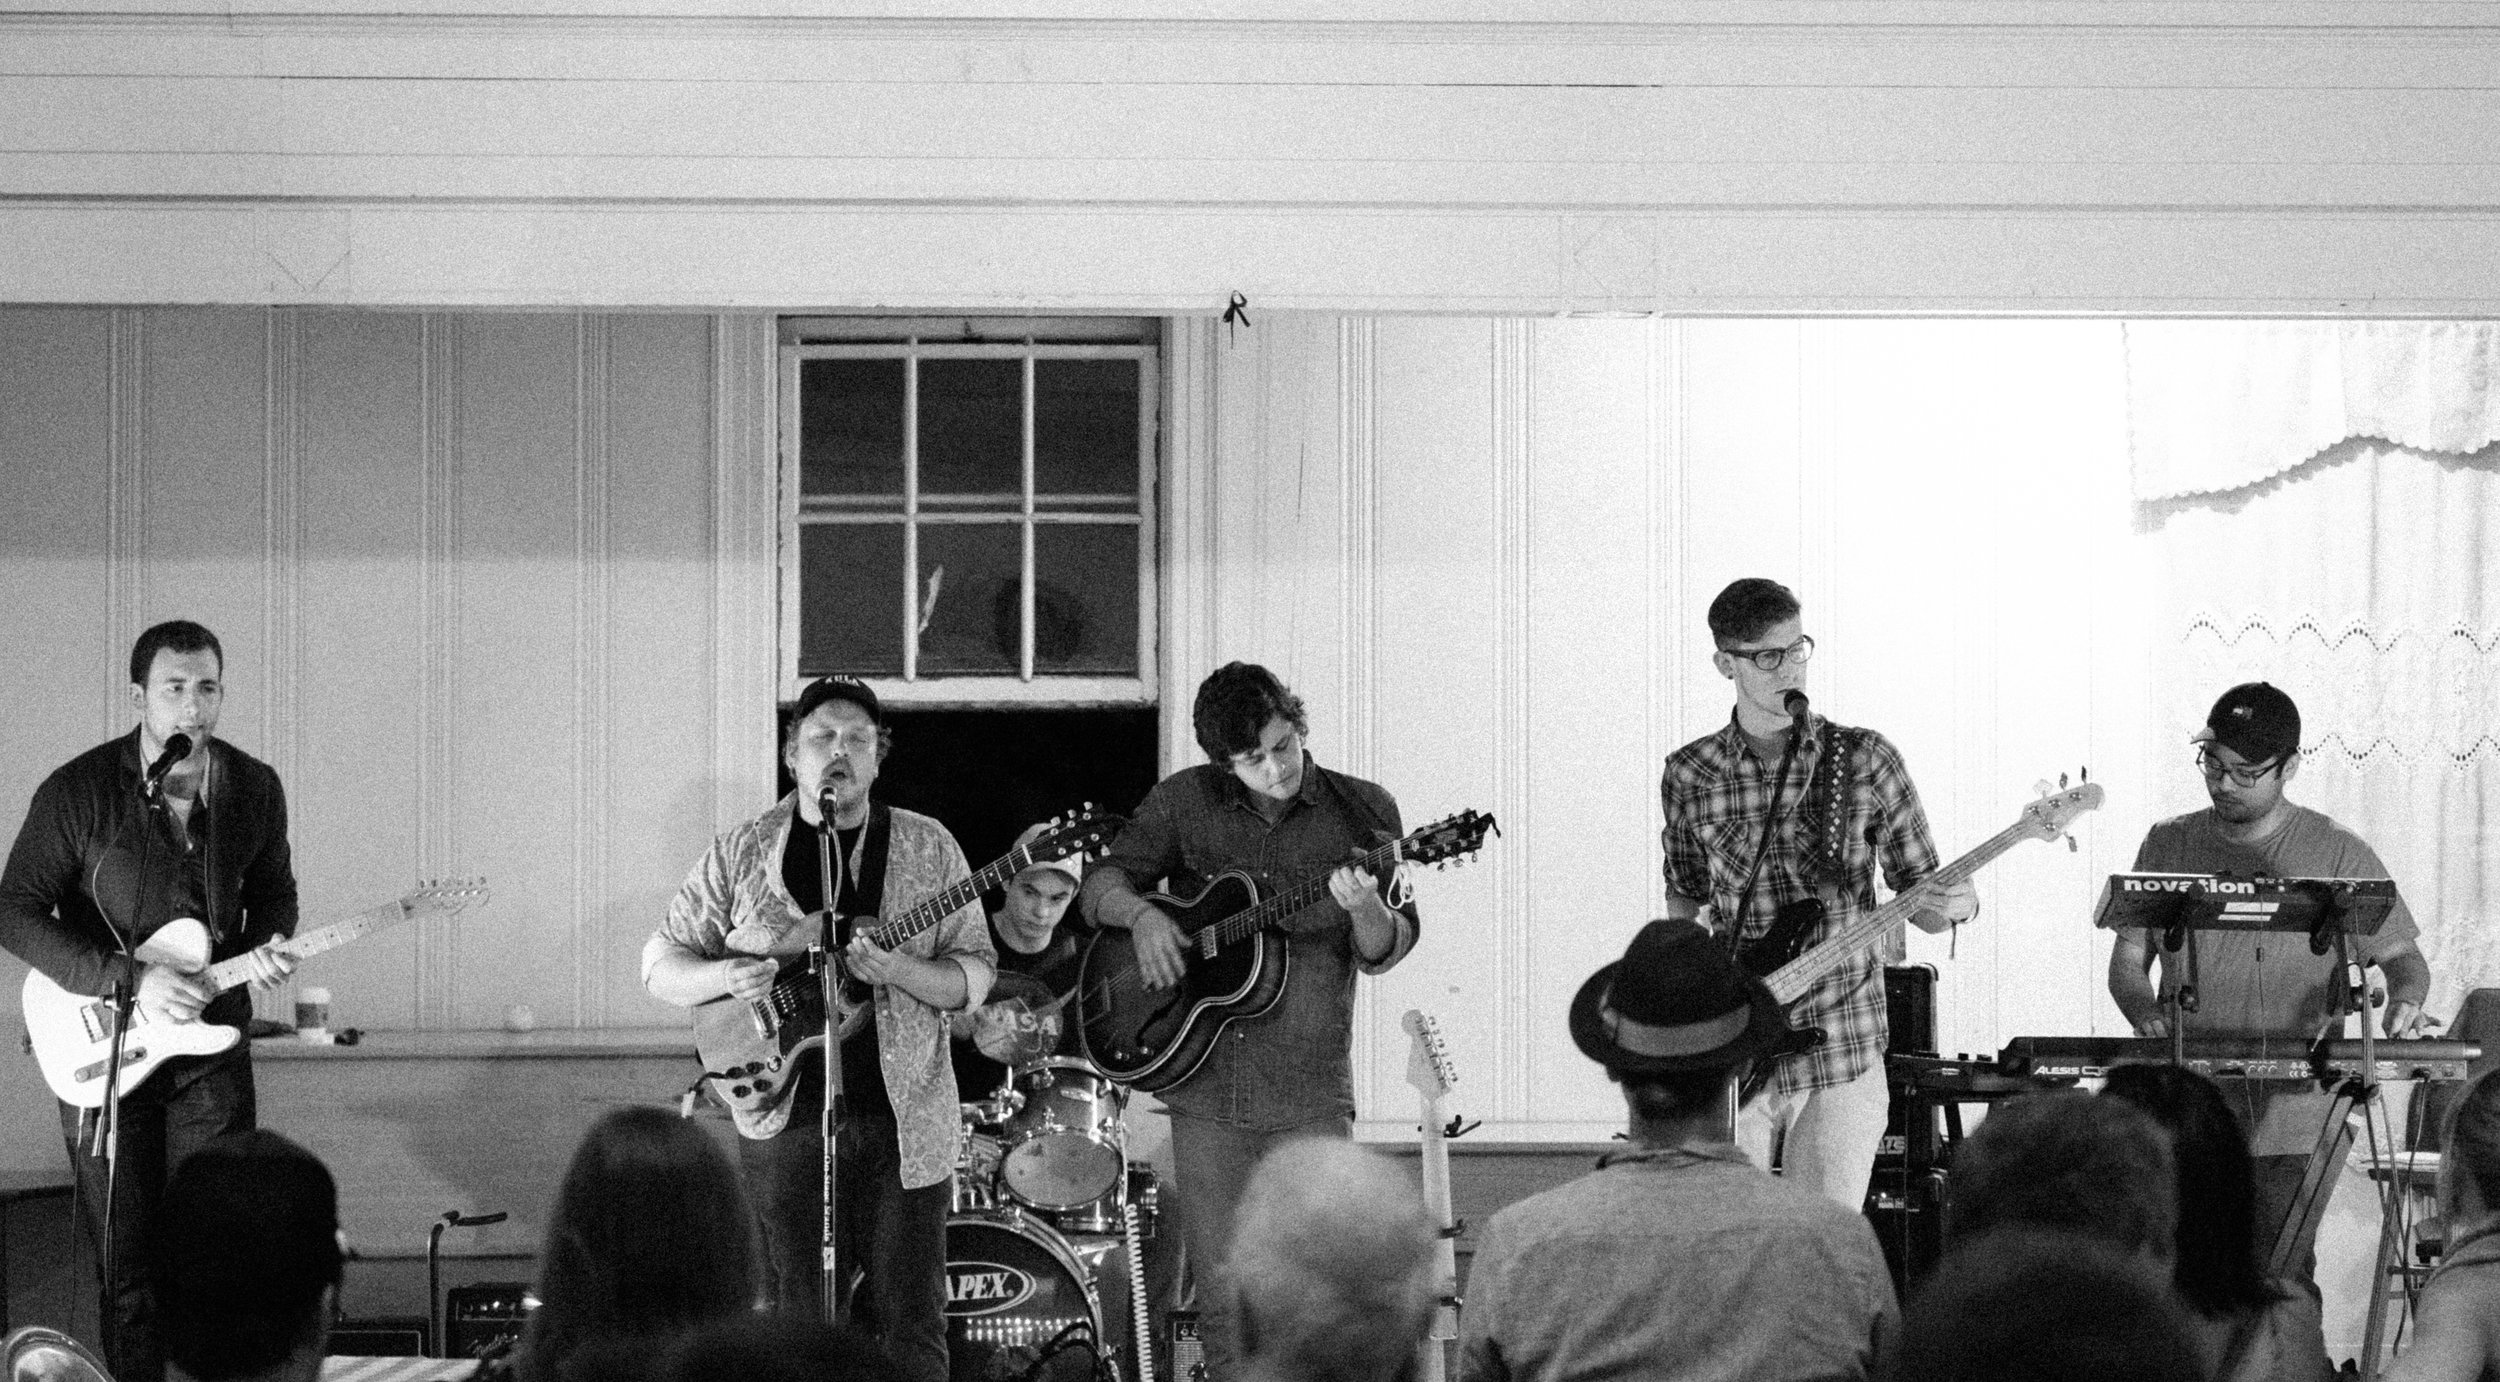 Timberfoot, Fellowship Hall, Seattle Acoustic Festival, 26 August 2017.